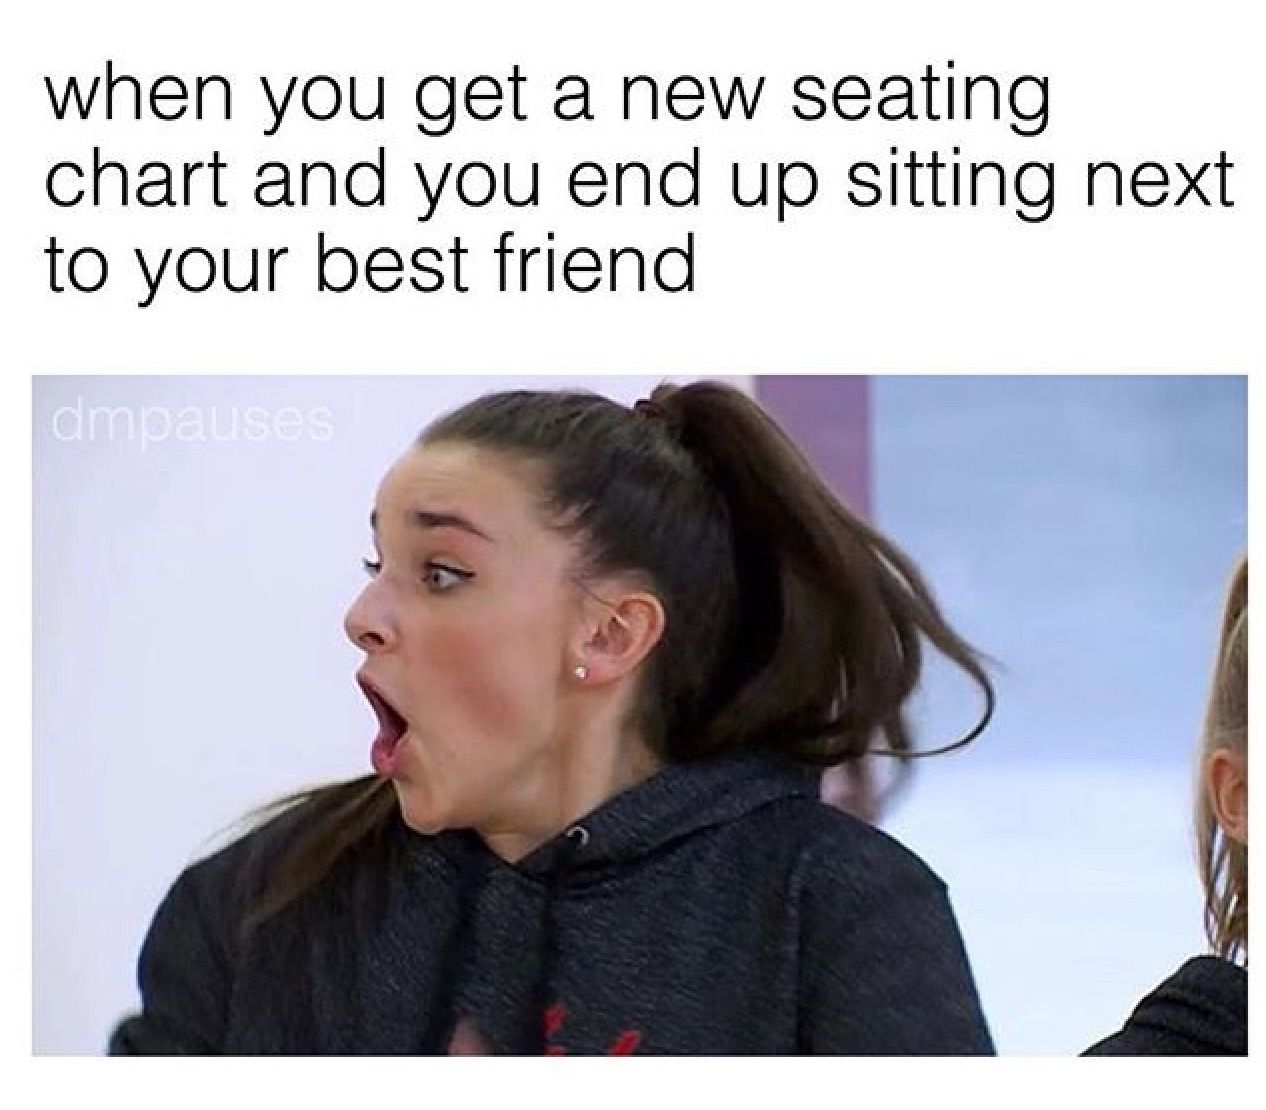 in my history class, i got sat in between my bff and crush